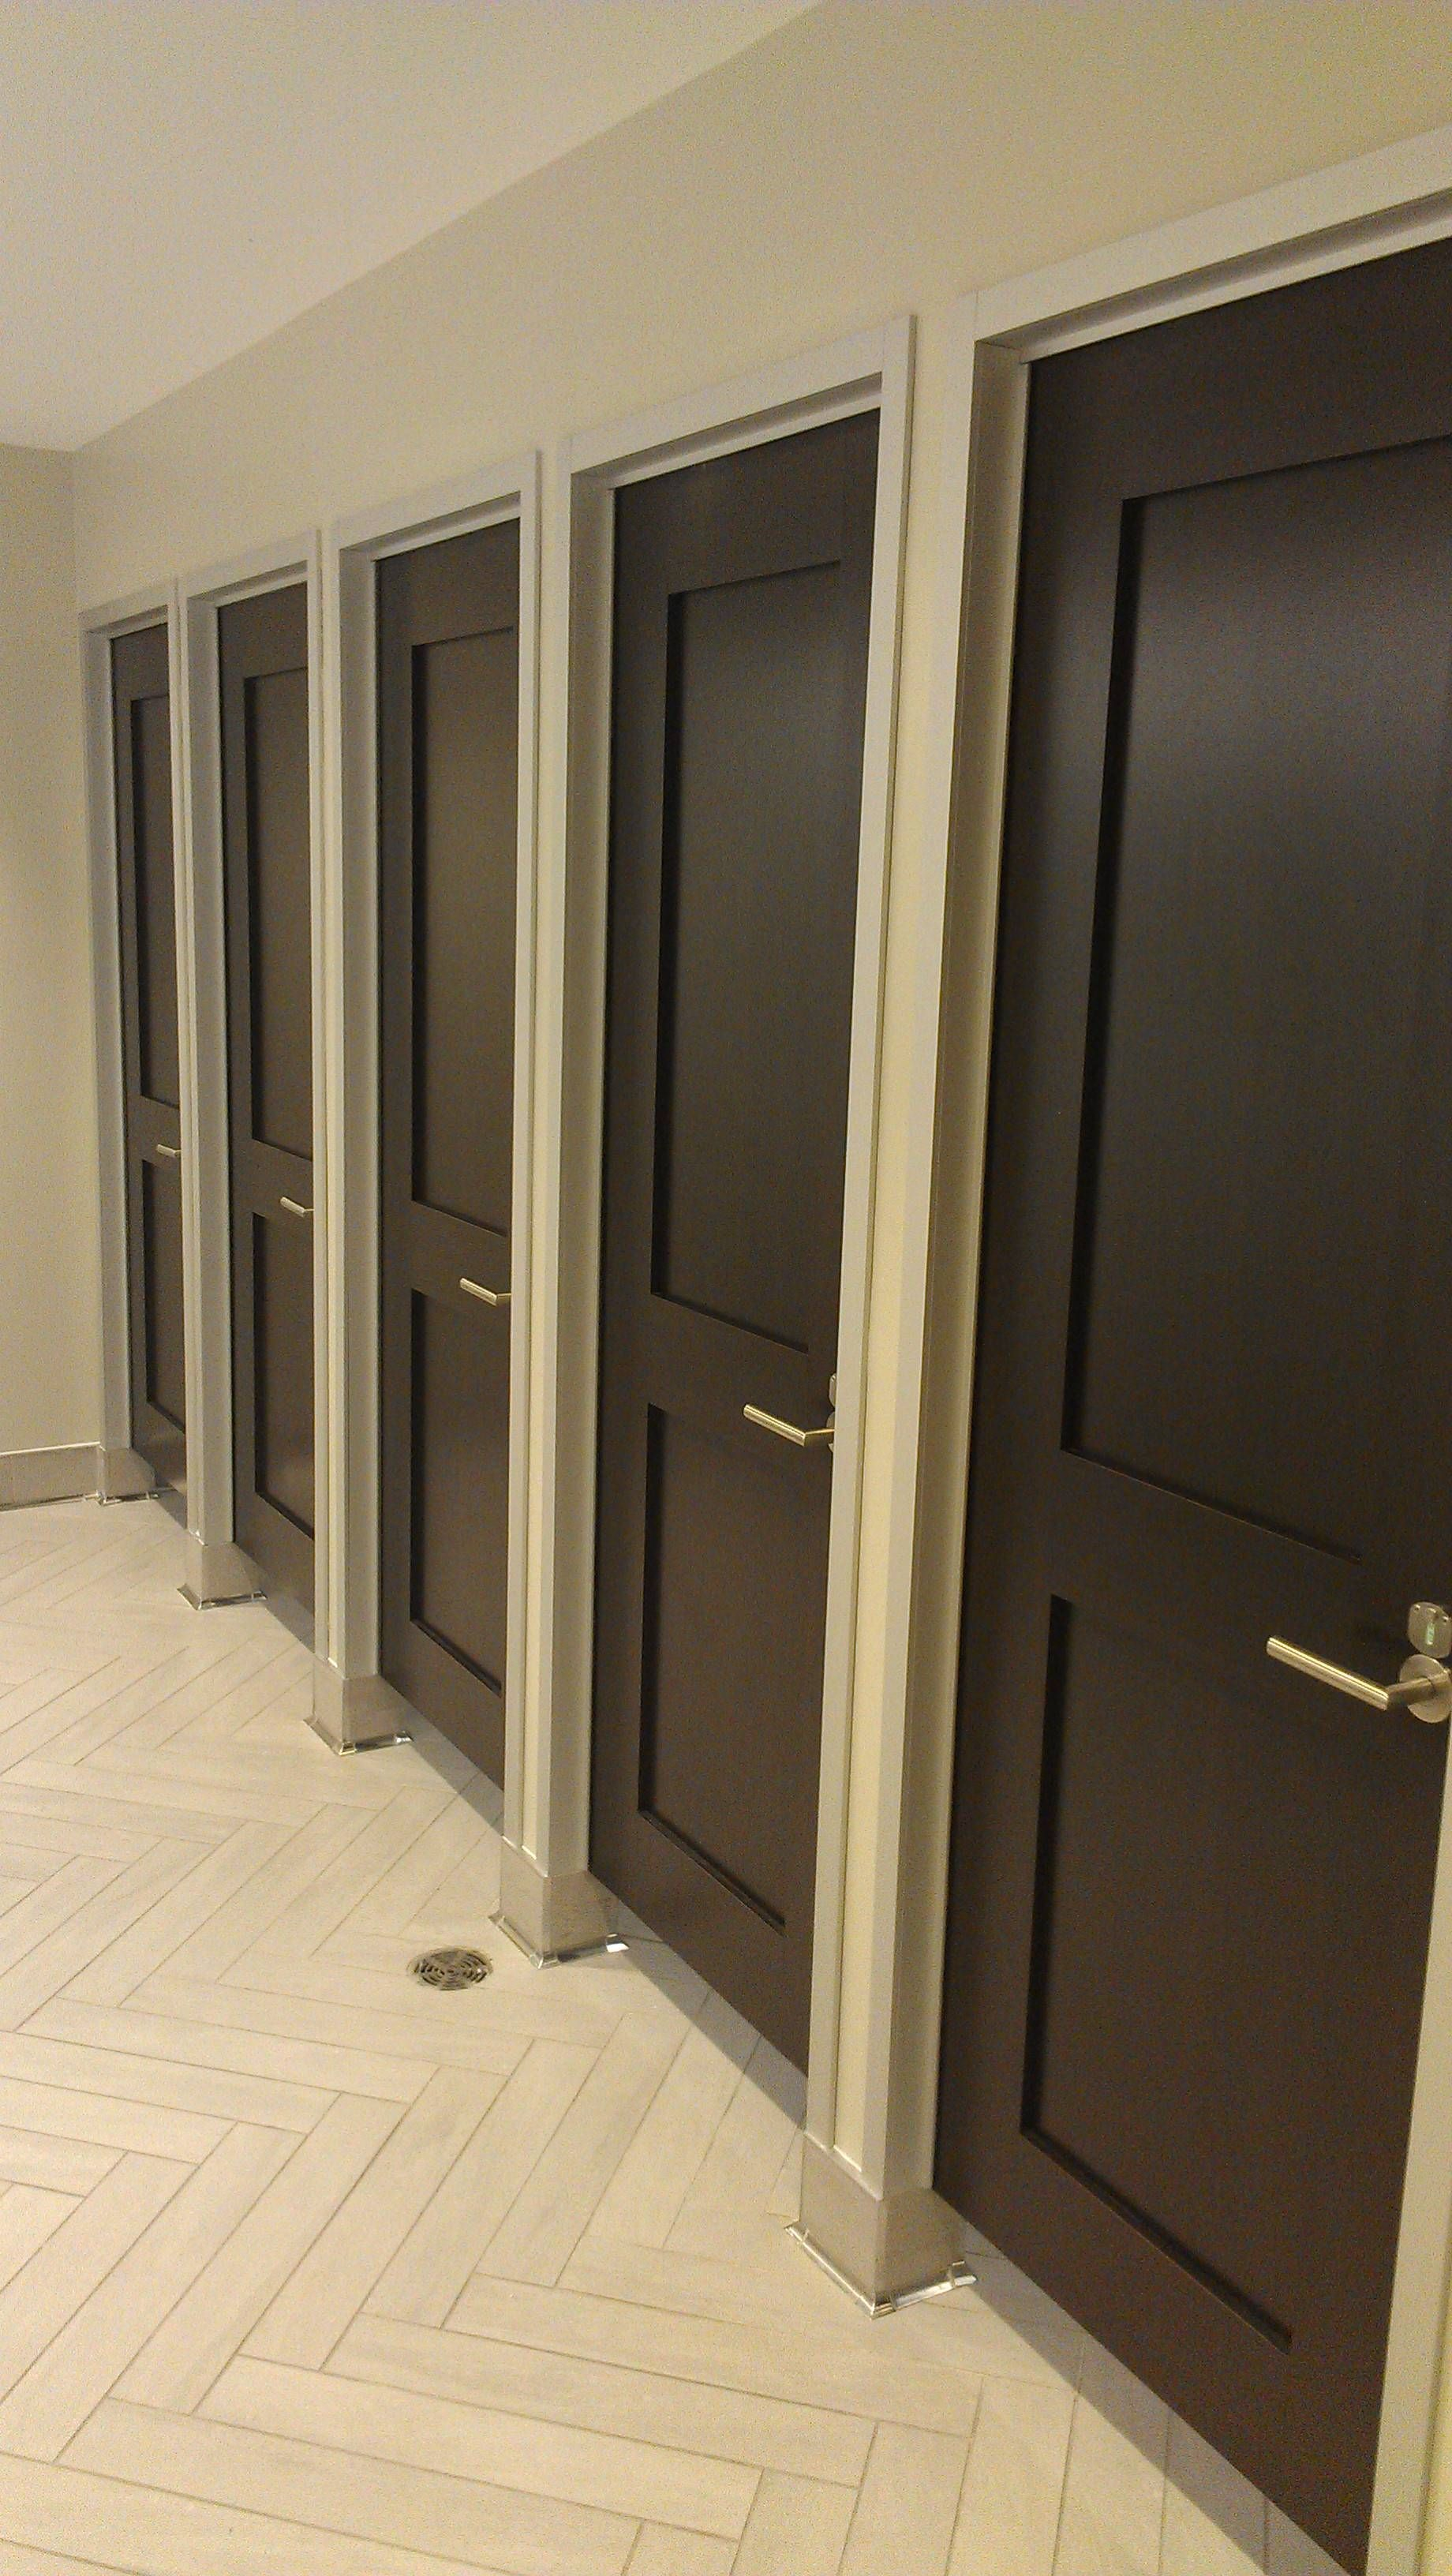 Bathroom Partitions Paint luxury toilet stalls - google search | hale building | pinterest